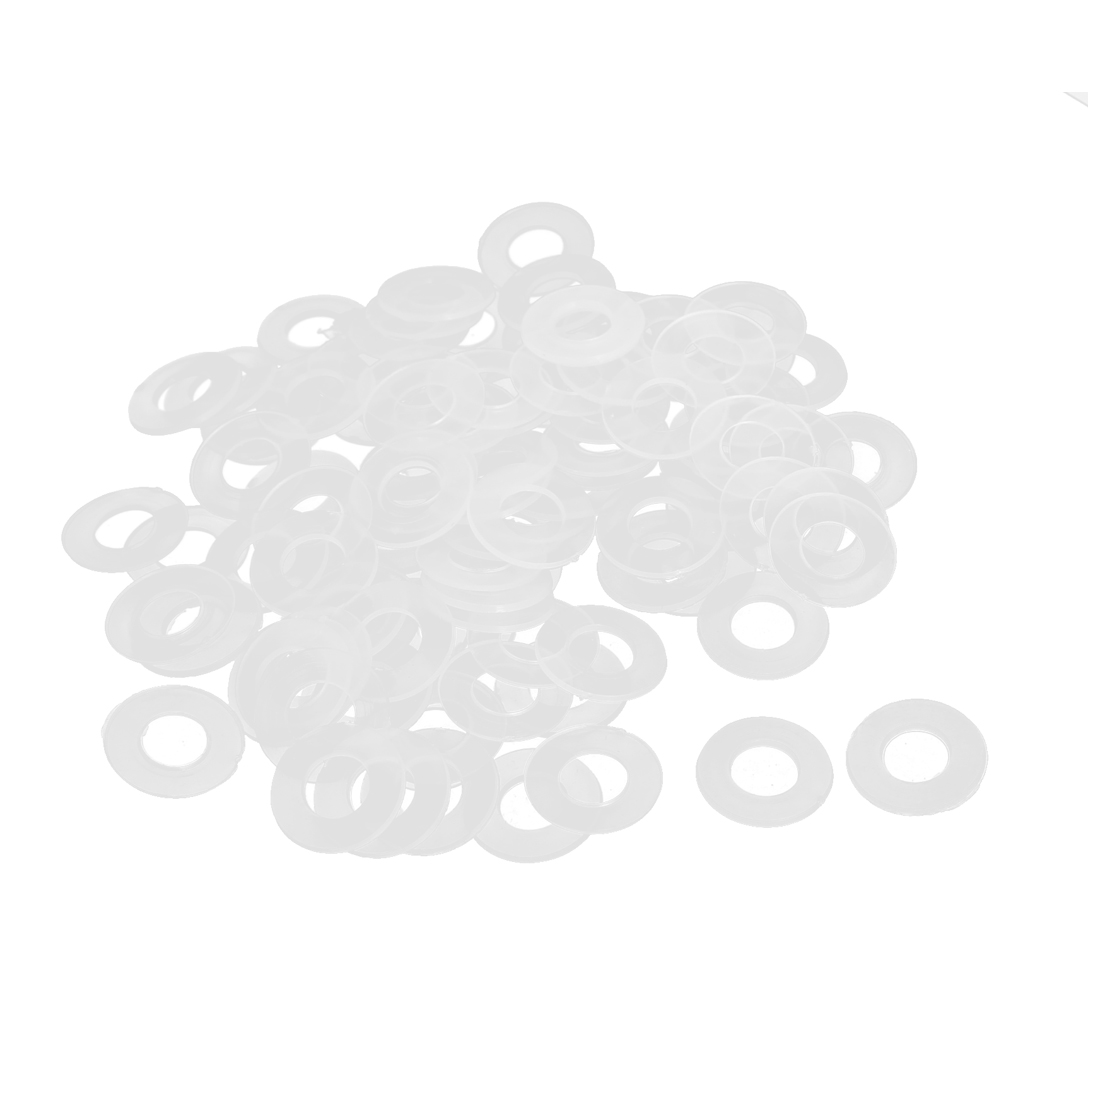 16mm x 8mm x 0.9mm Nylon Flat Insulating Washers Spacer Gasket Clear 100pcs